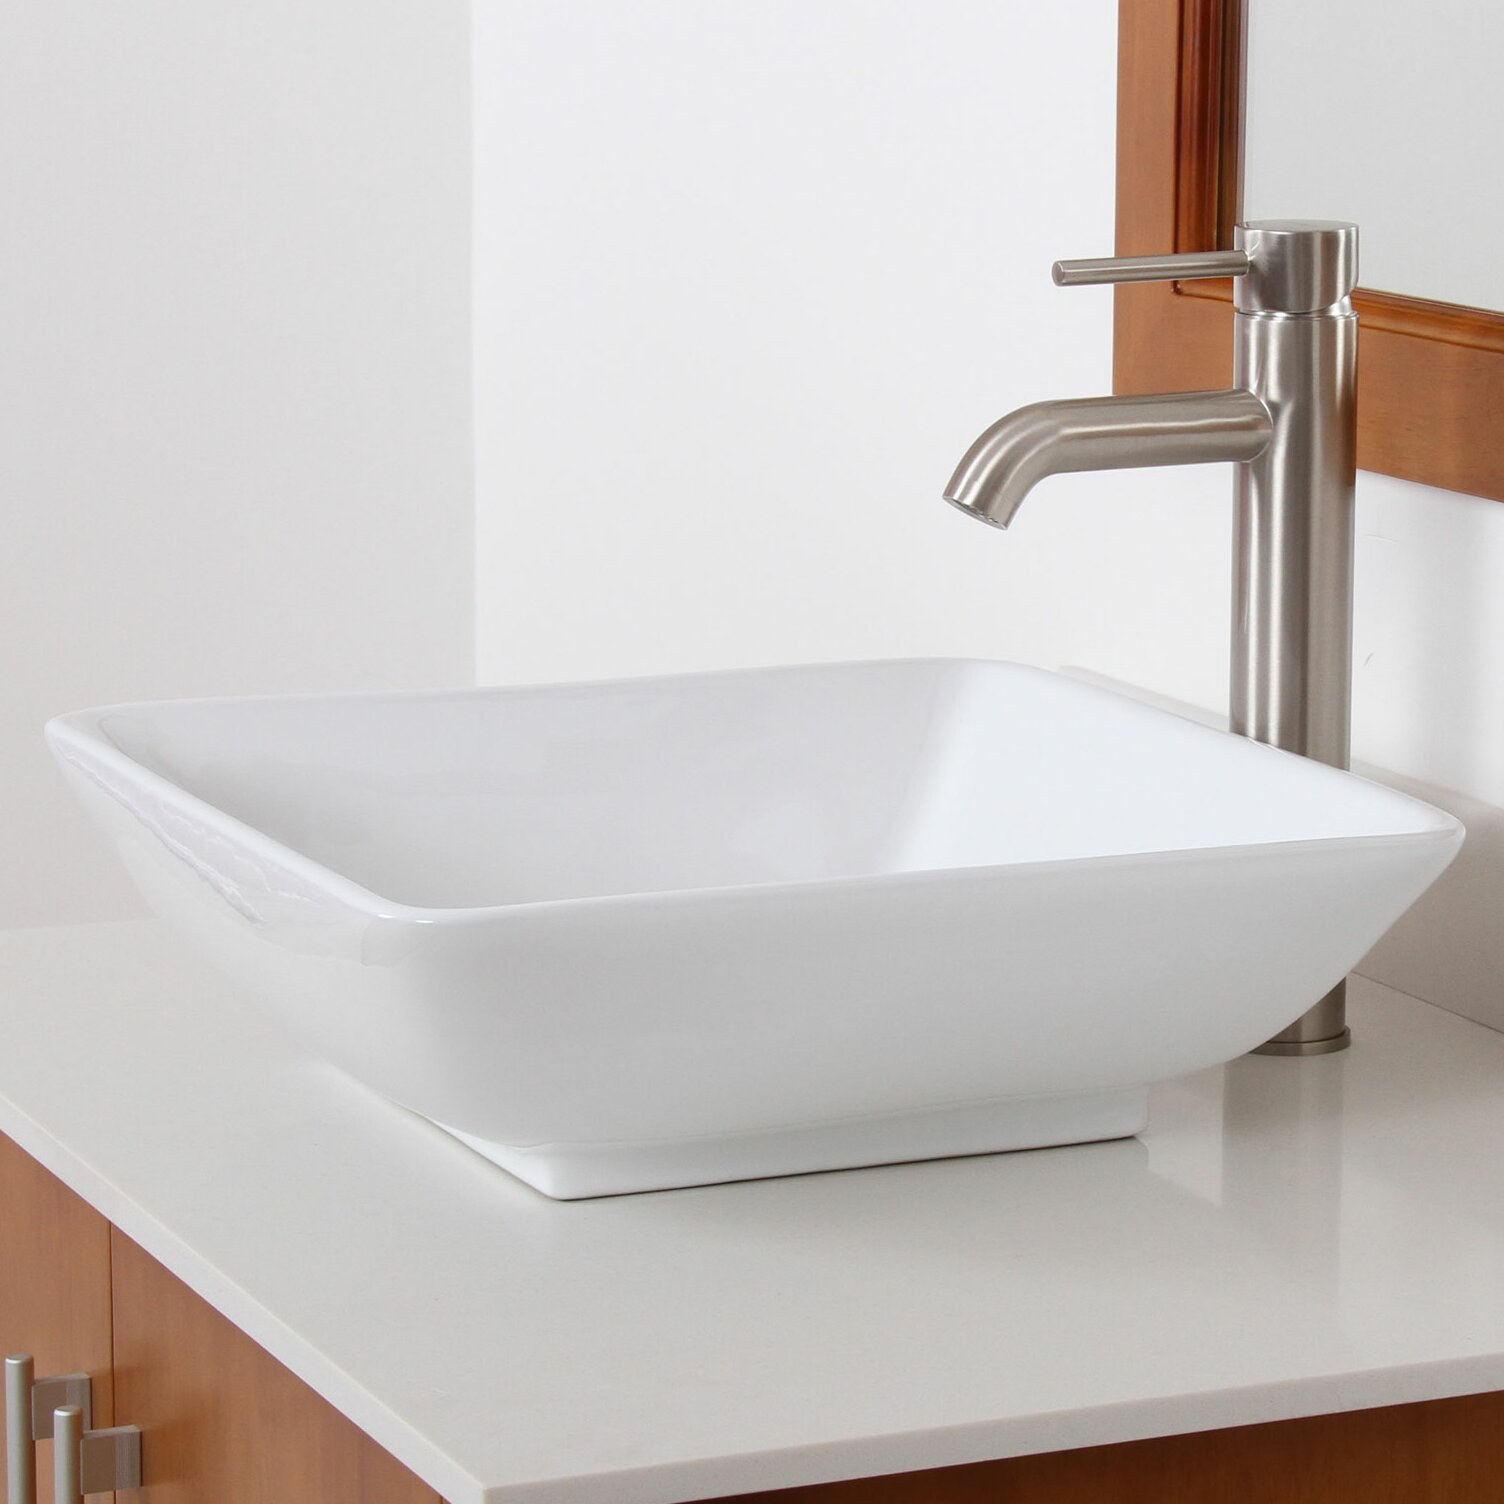 Square bathroom sinks - Elite Ceramic Square Bathroom Sink